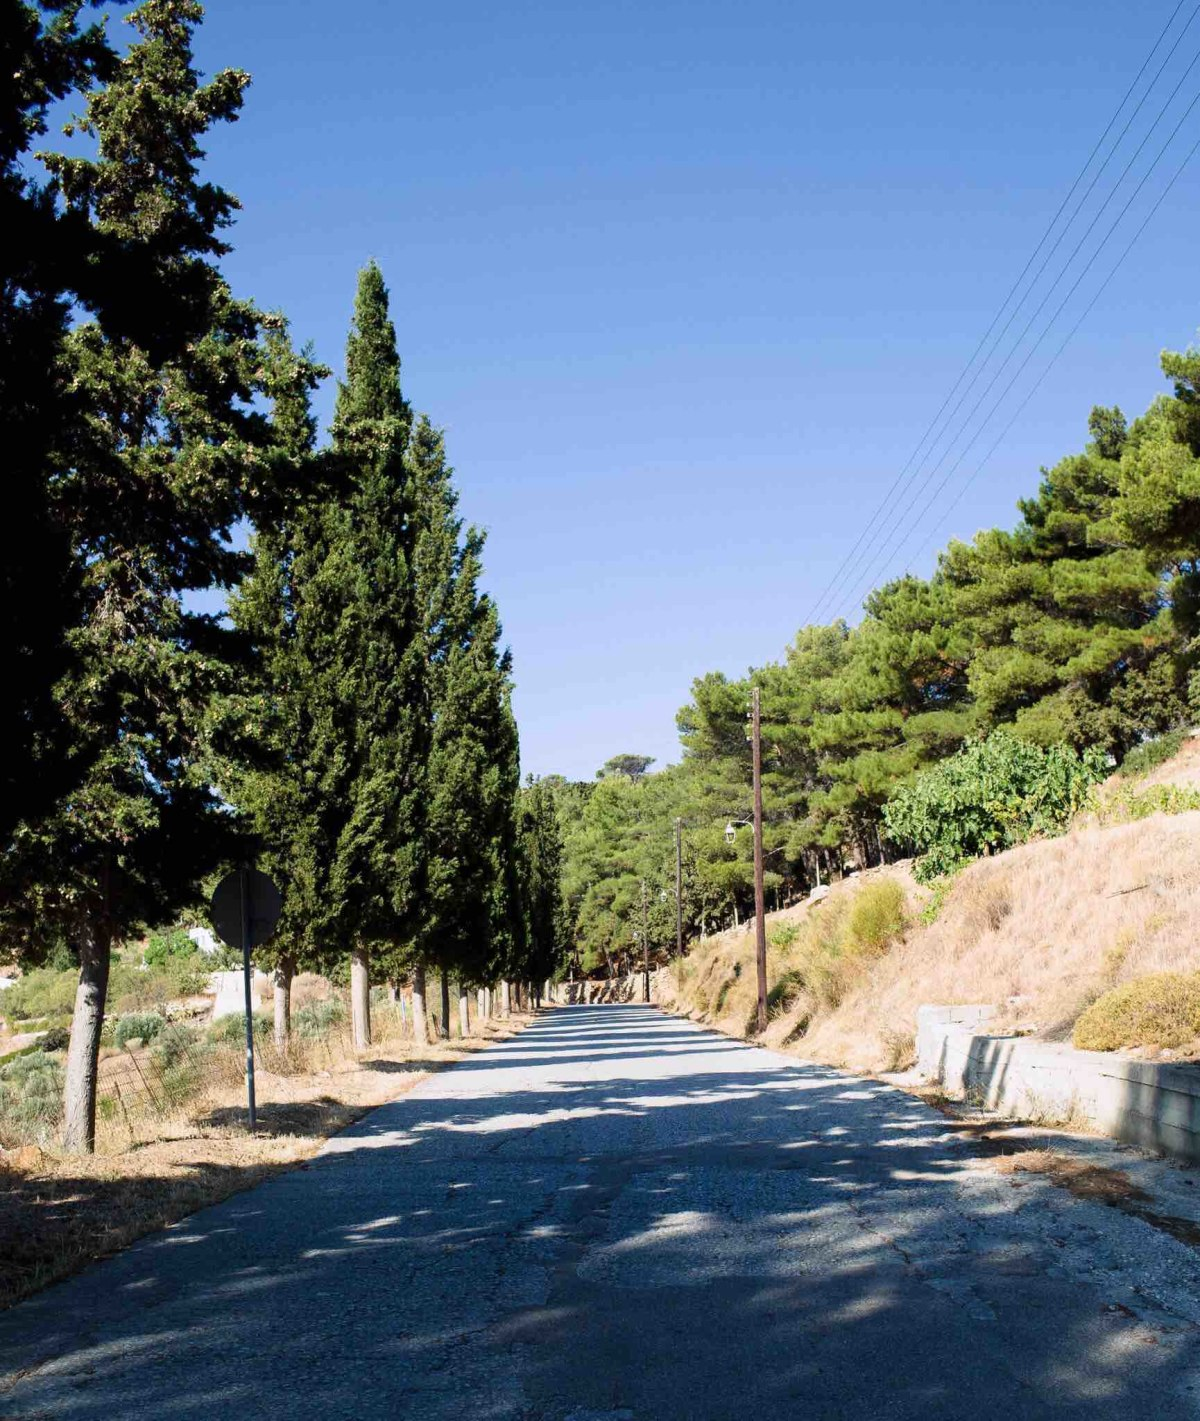 Driving the winding roads of Lefkes.